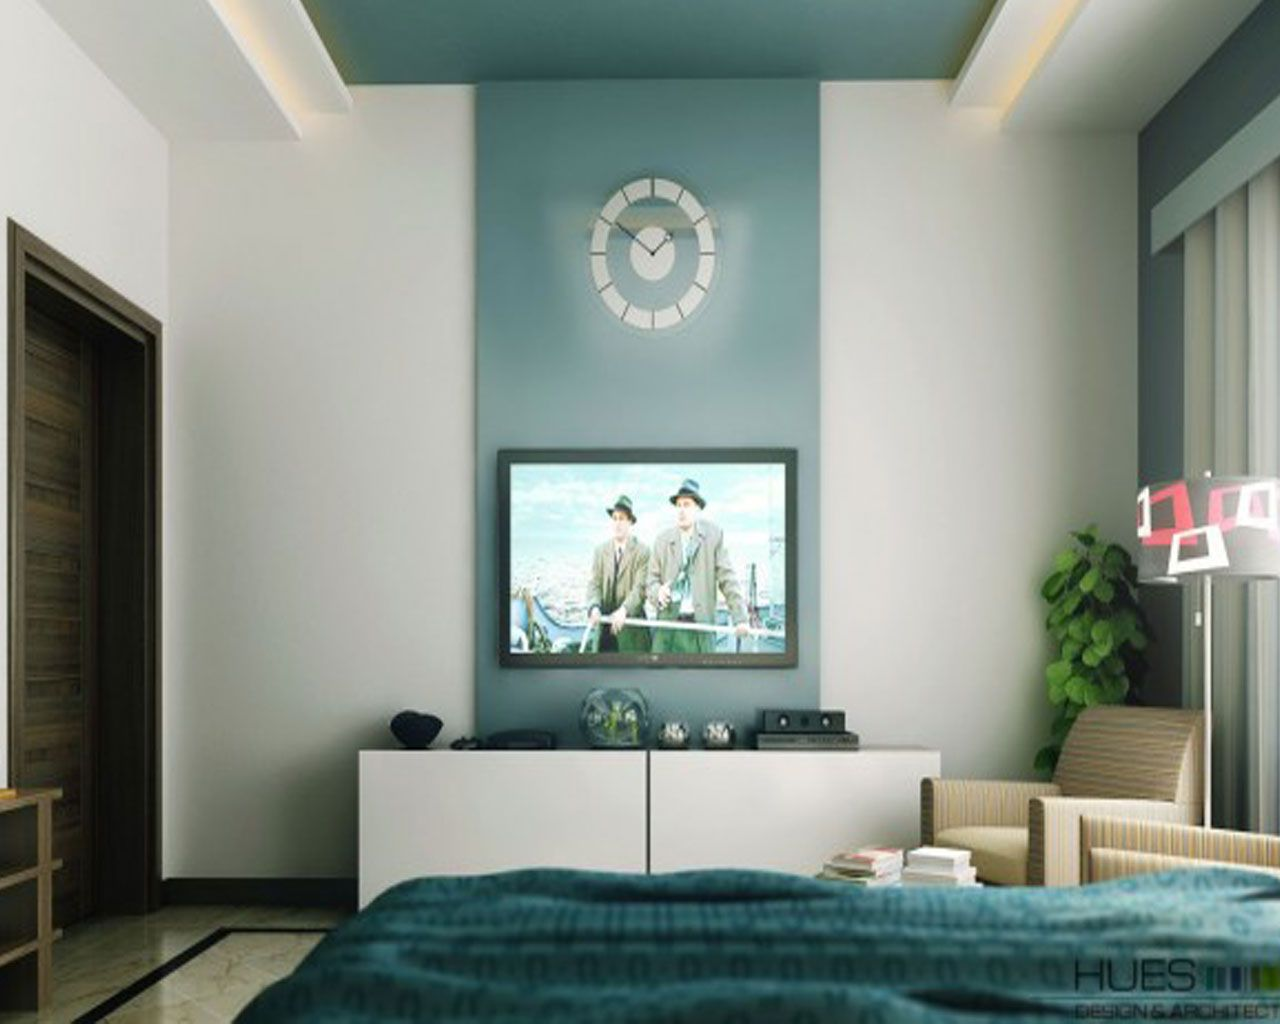 Feature wall painting ideas google search painting Living room feature wallpaper ideas